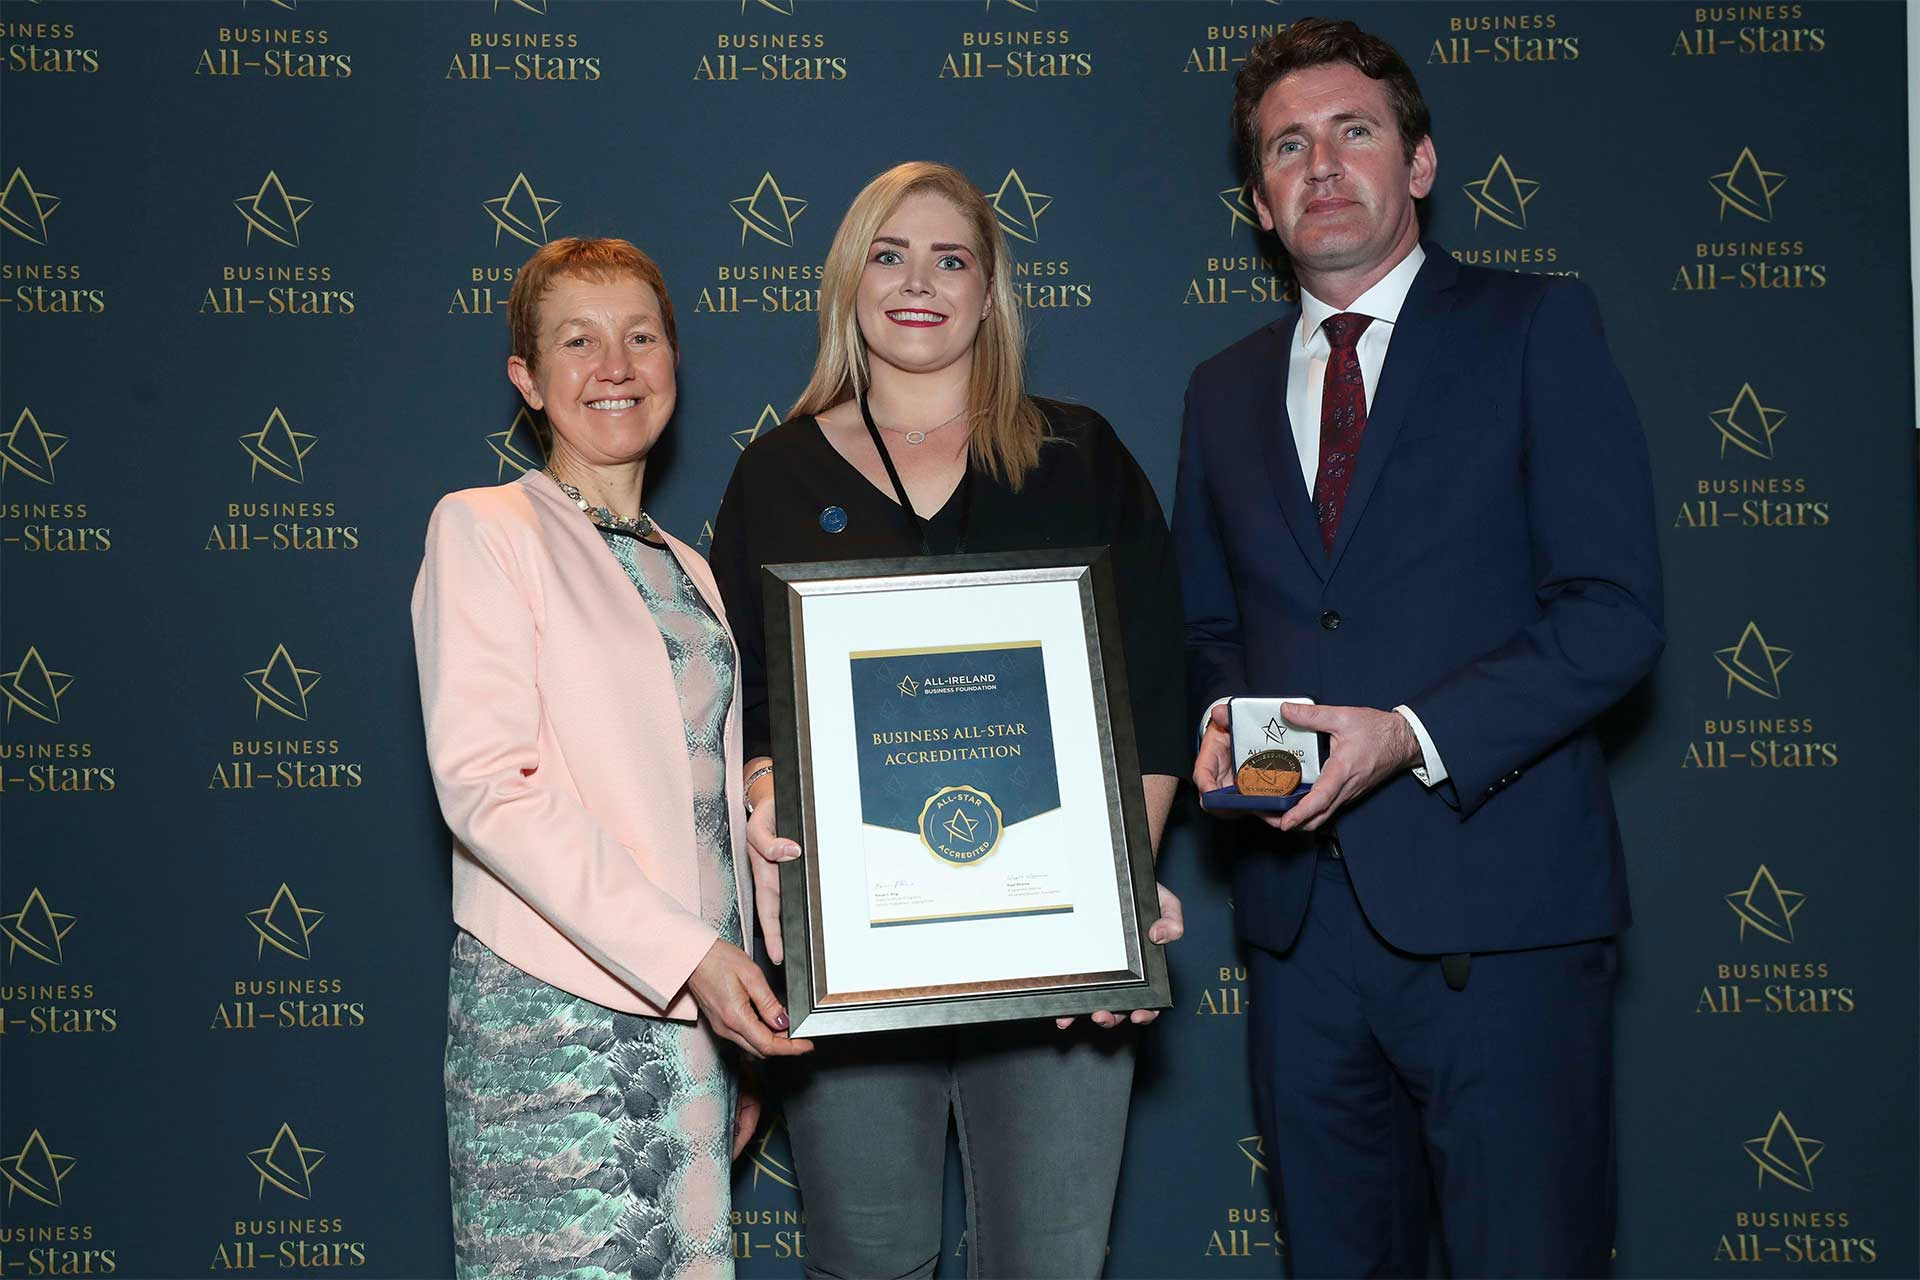 Siobhan McGrath - Zenith Hairdressing Claregalway receiving Business All-Star Accreditation at Croke Park from Dr Briga Hynes, Kemmy Business School, University of Limerick and Senator Aodhán Ó Ríordáin, Spokesperson on Education and Skills, Gaeilge and the Gaeltacht.